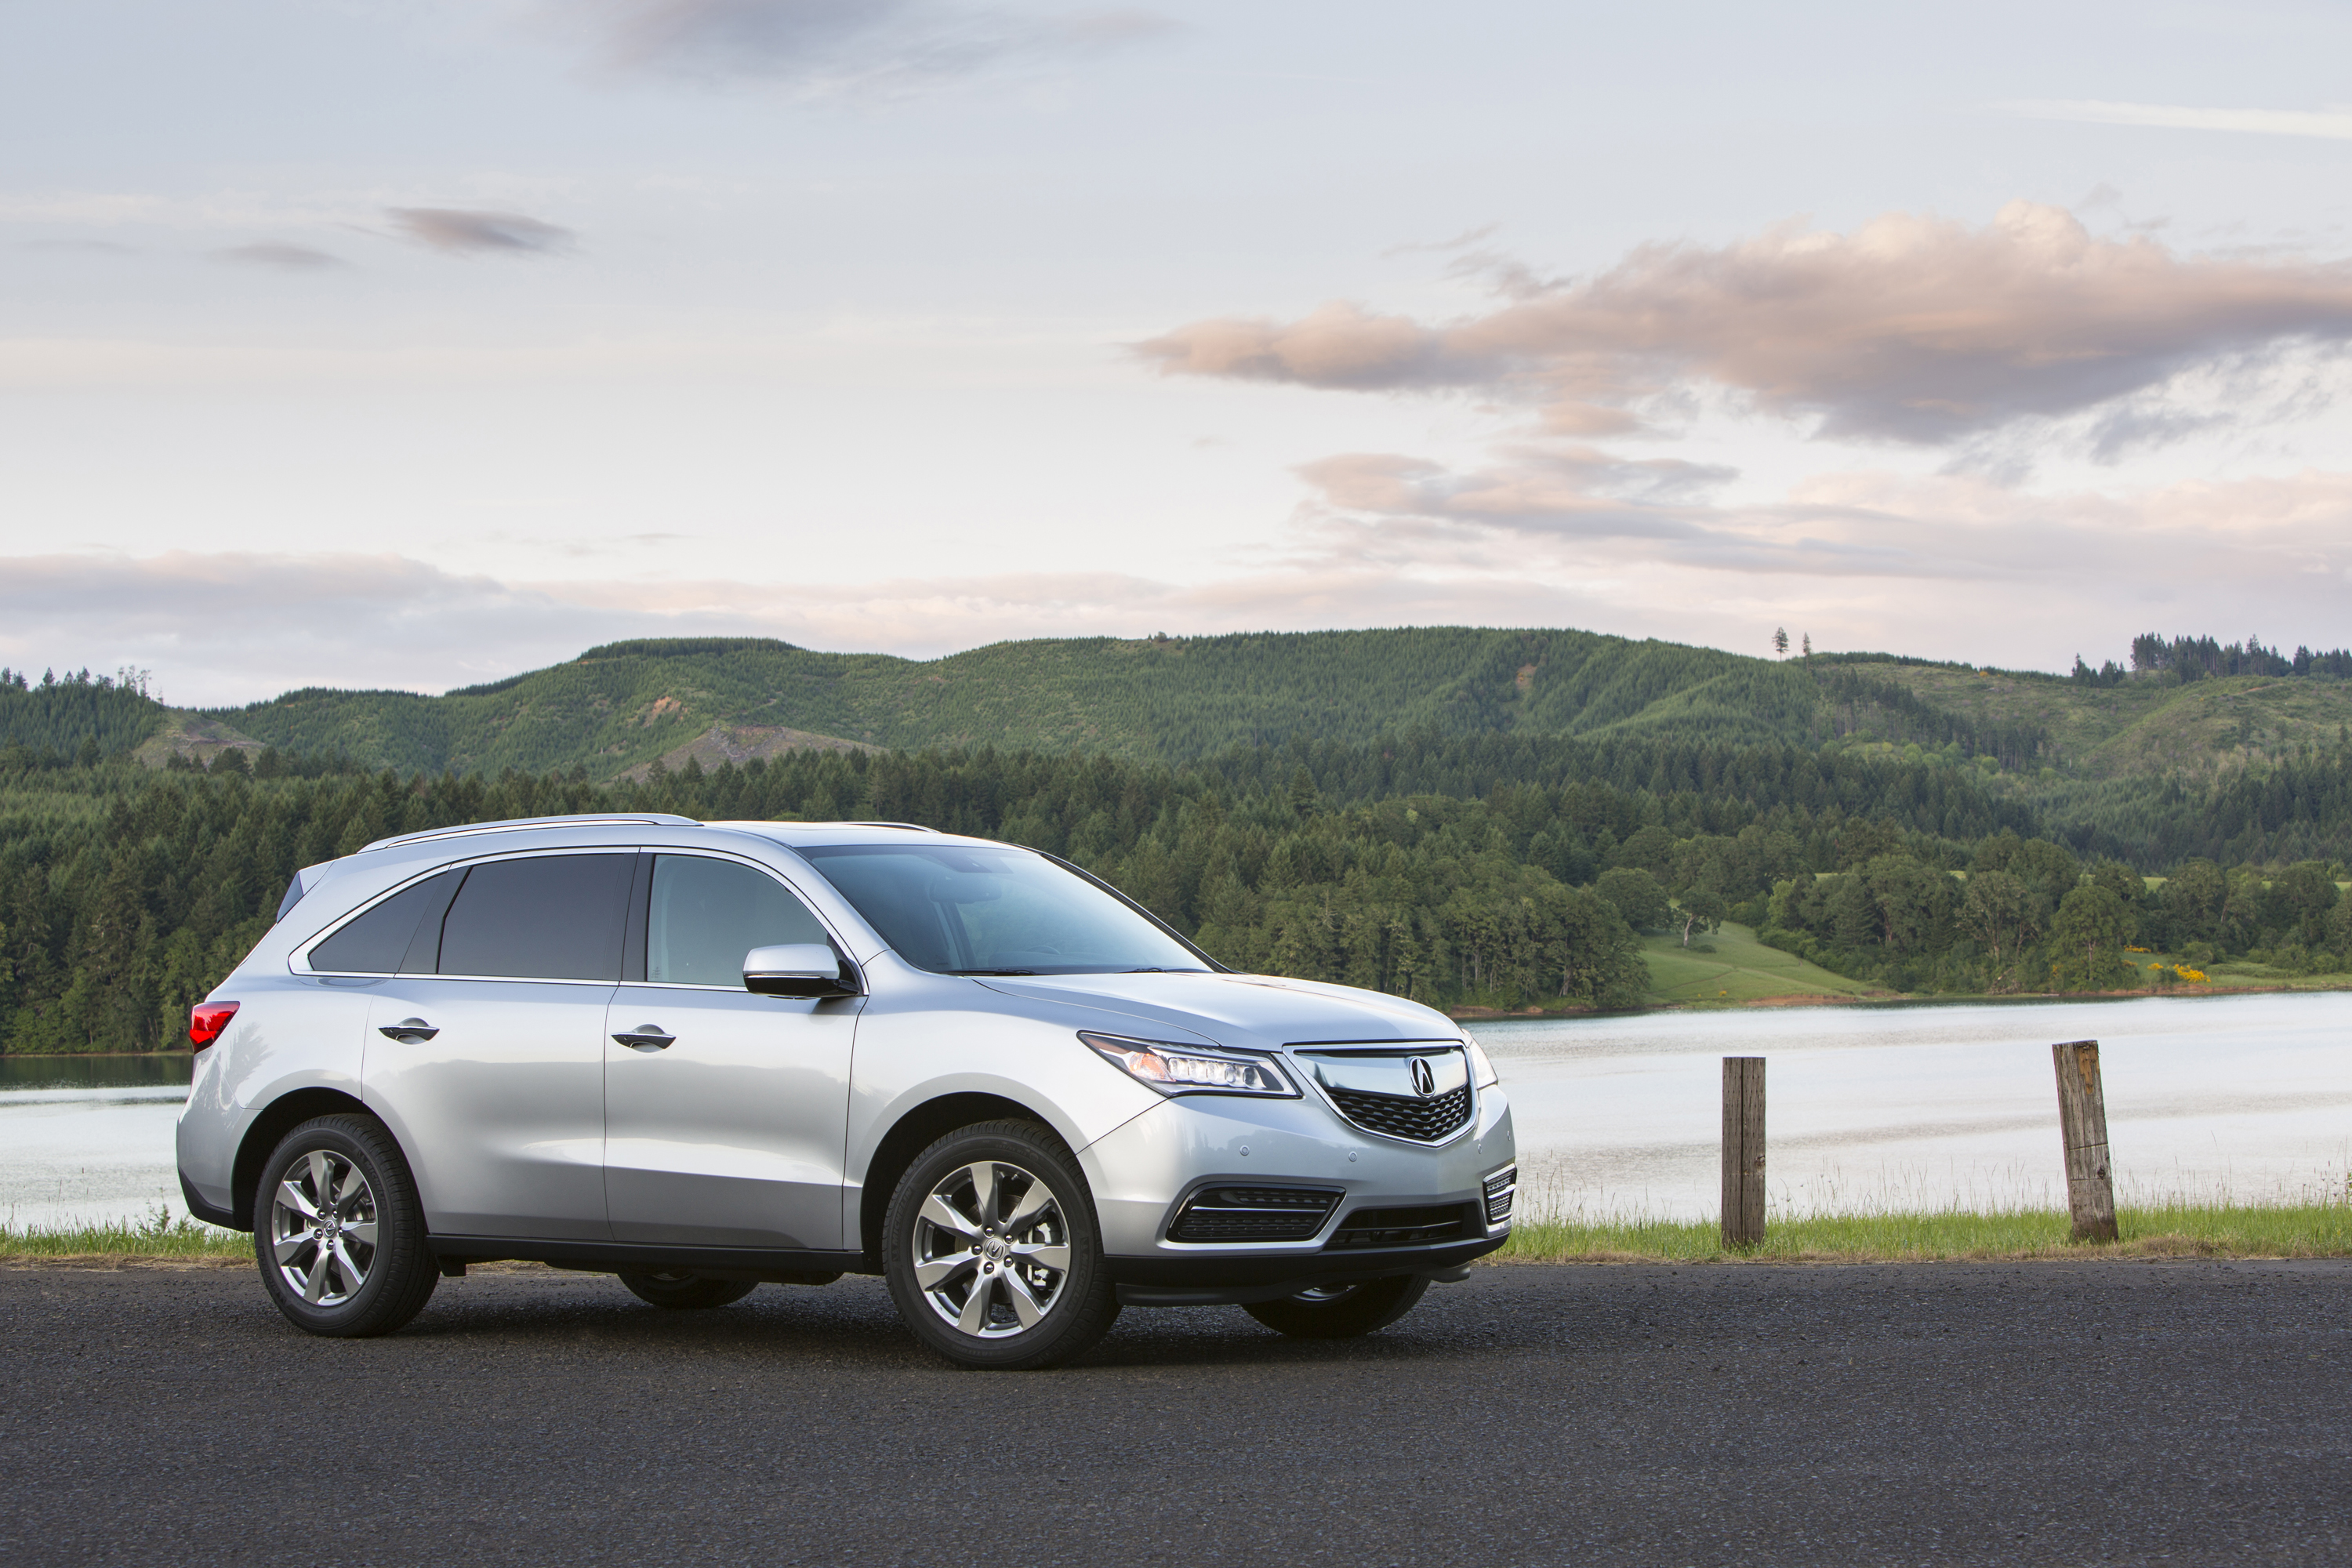 Highly Acclaimed and Award-winning Acura MDX Remains the Luxury SUV Standout for 2015